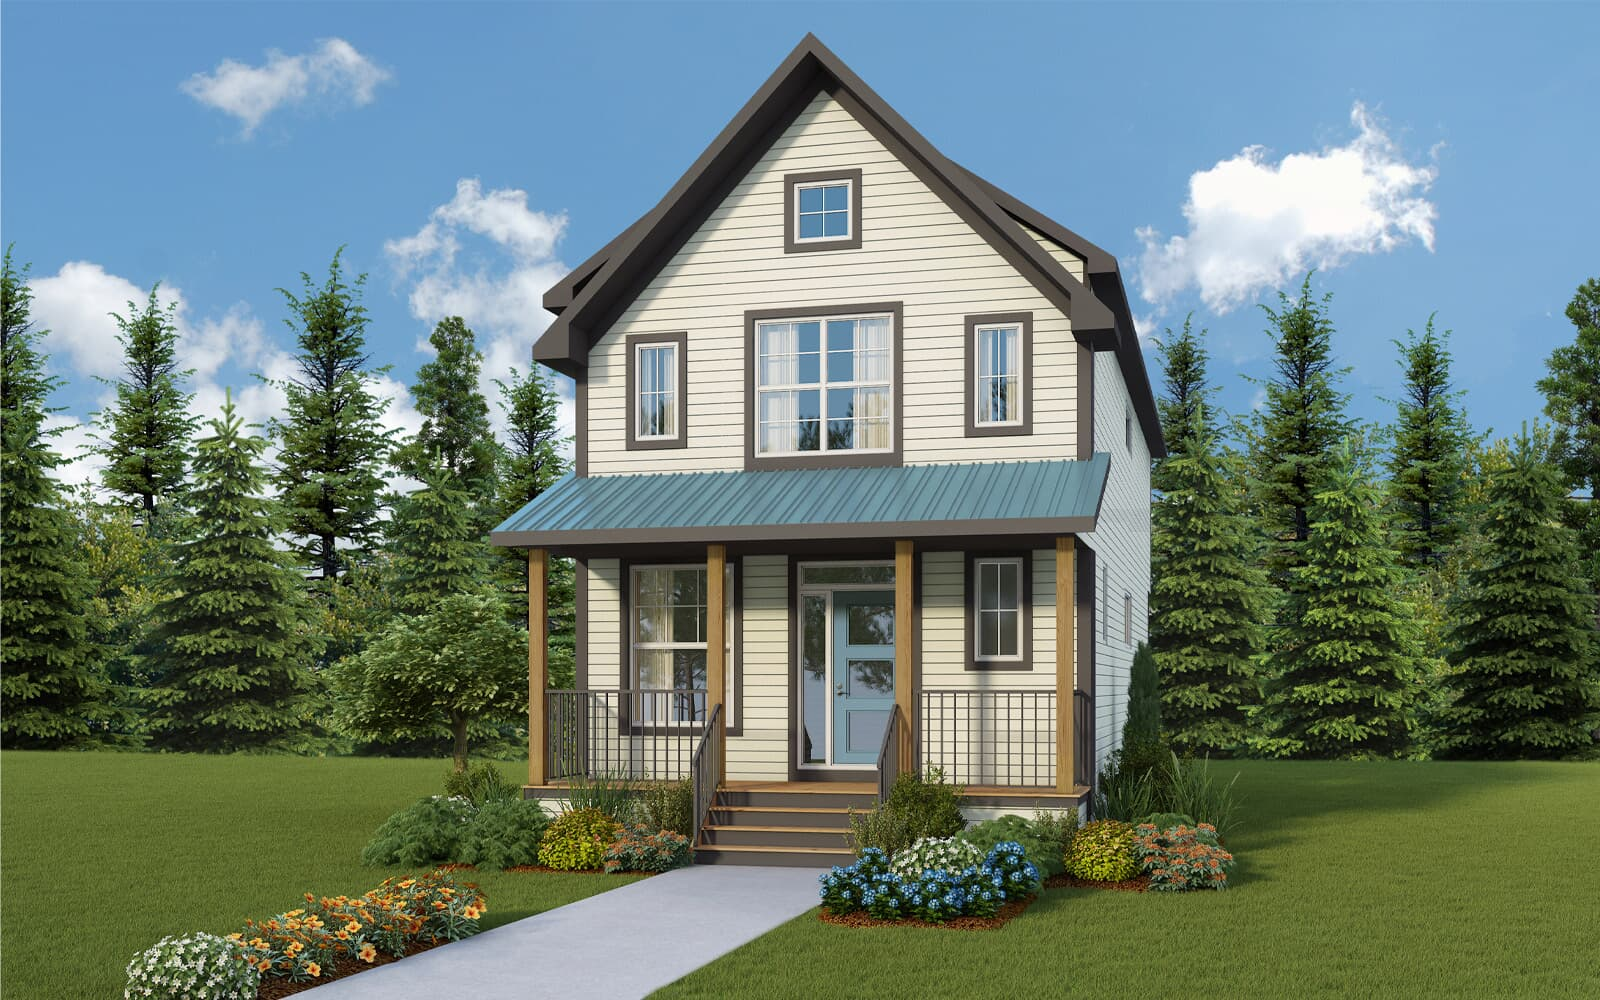 model-84-lv1-farmhouse-carlisleii-calgary